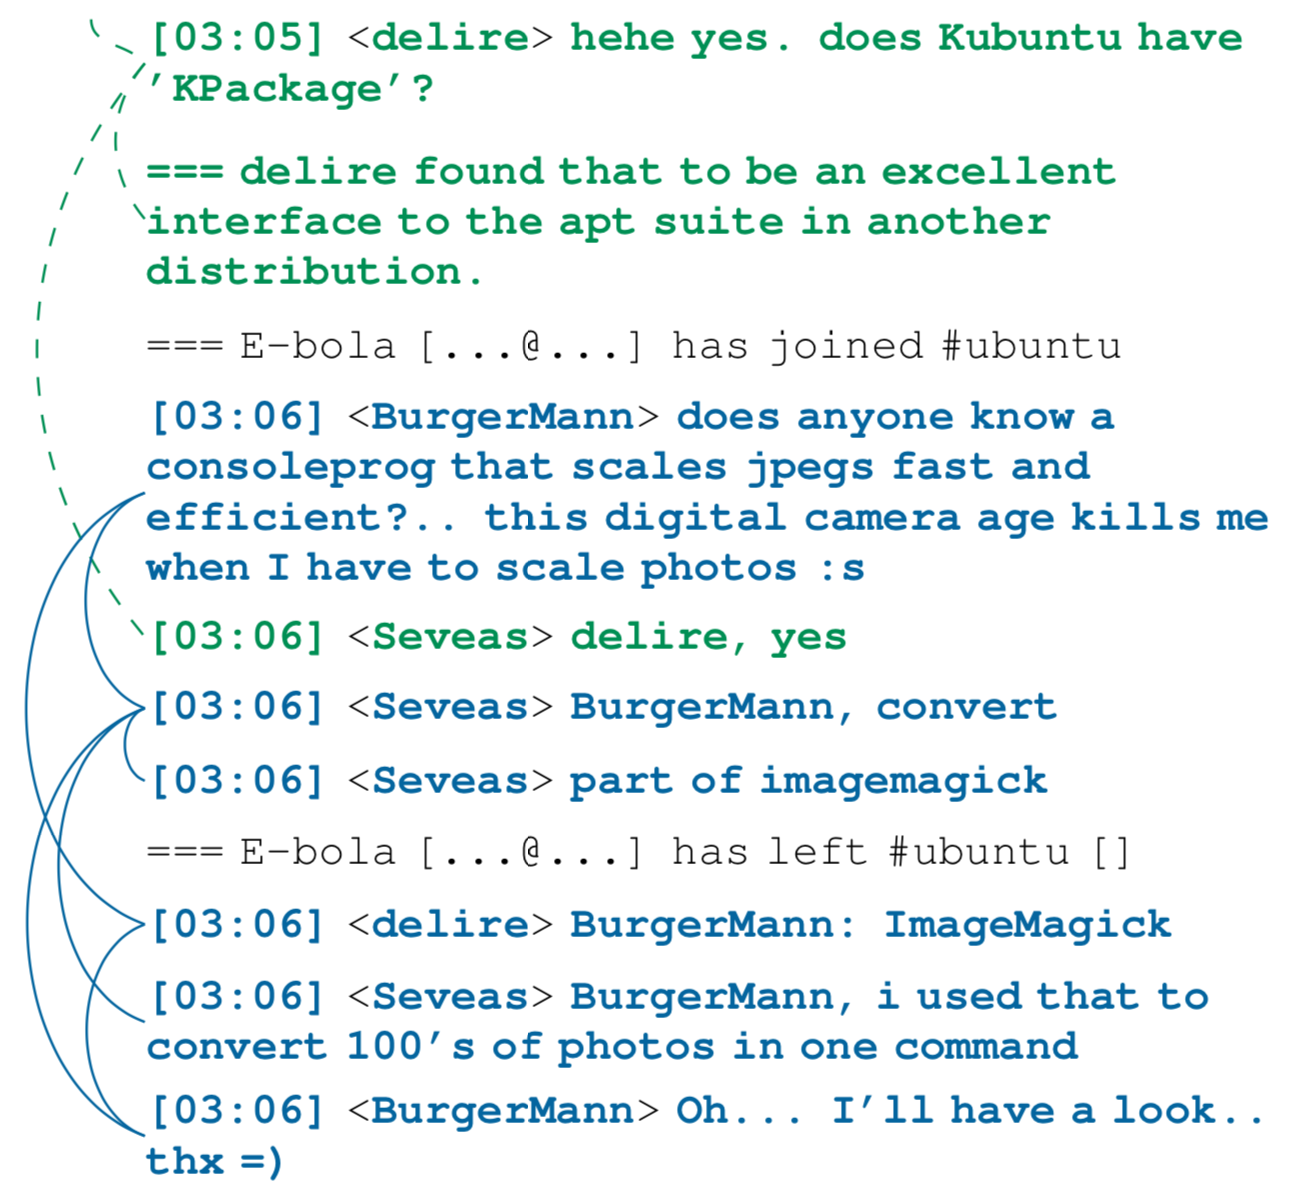 Image of an IRC message log with conversations marked